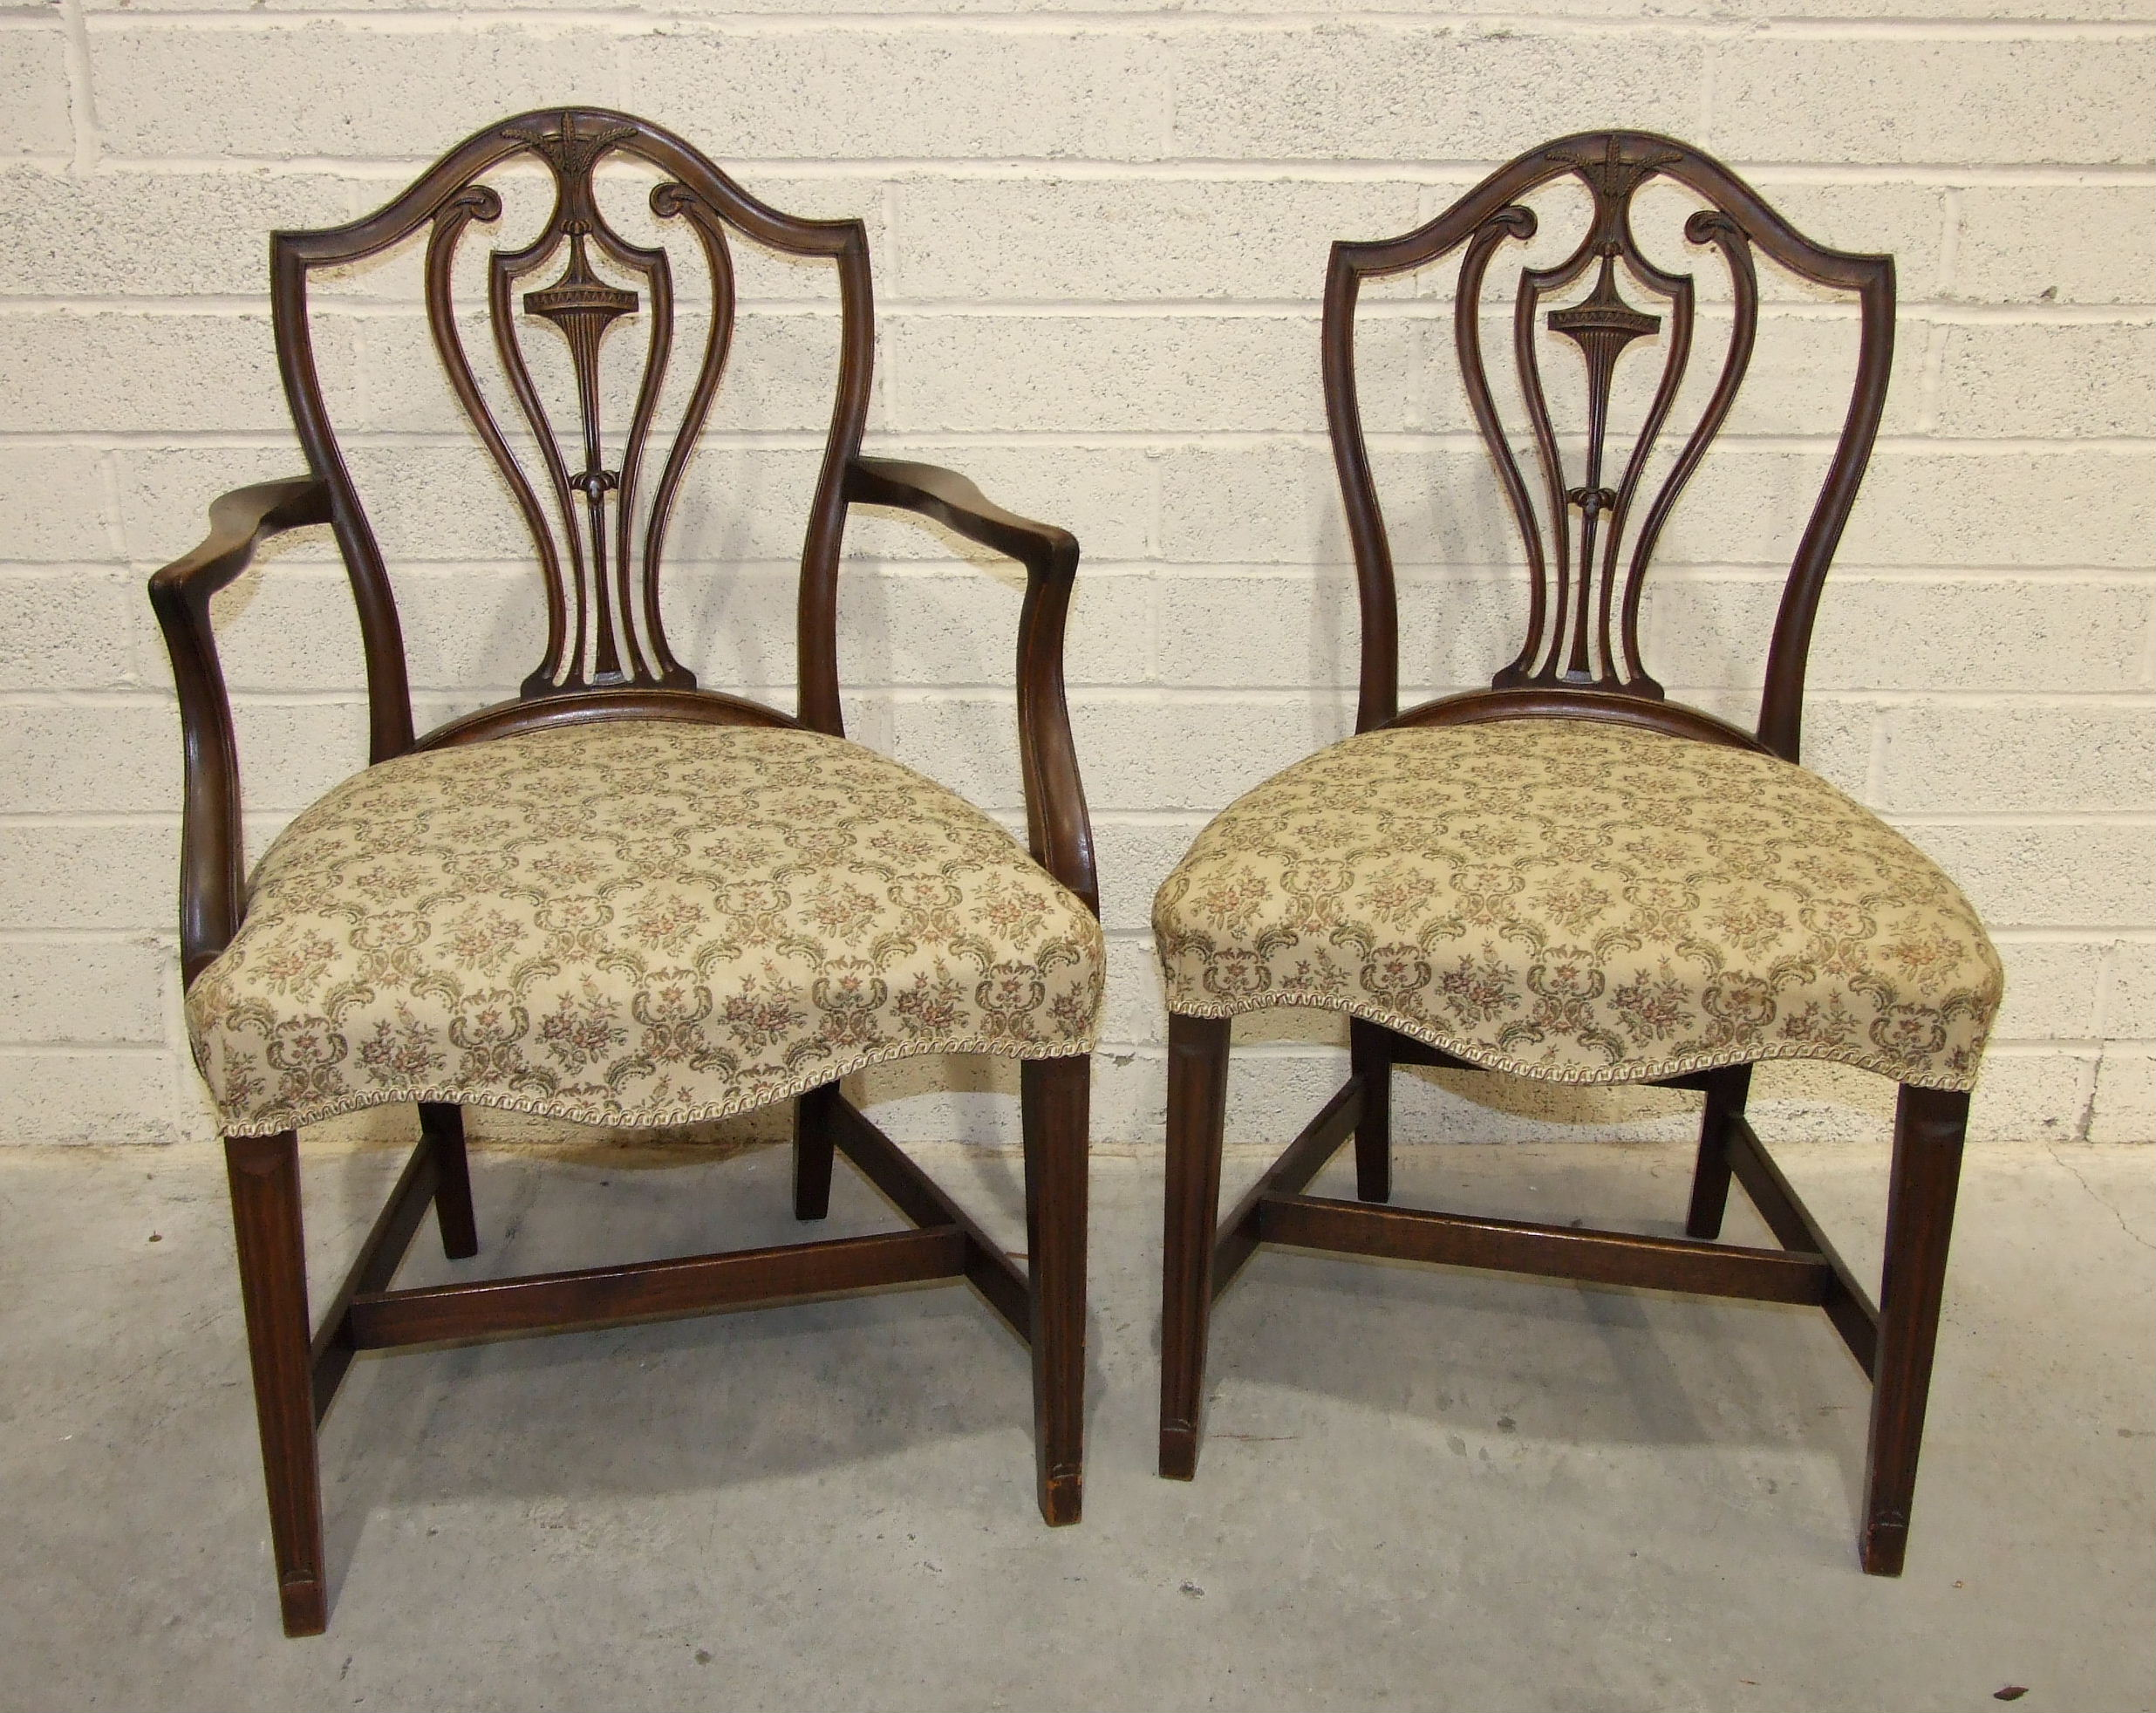 Lot 64 - A set of six Adam-style dining chairs with serpentine upholstered seats, on moulded tapered legs and